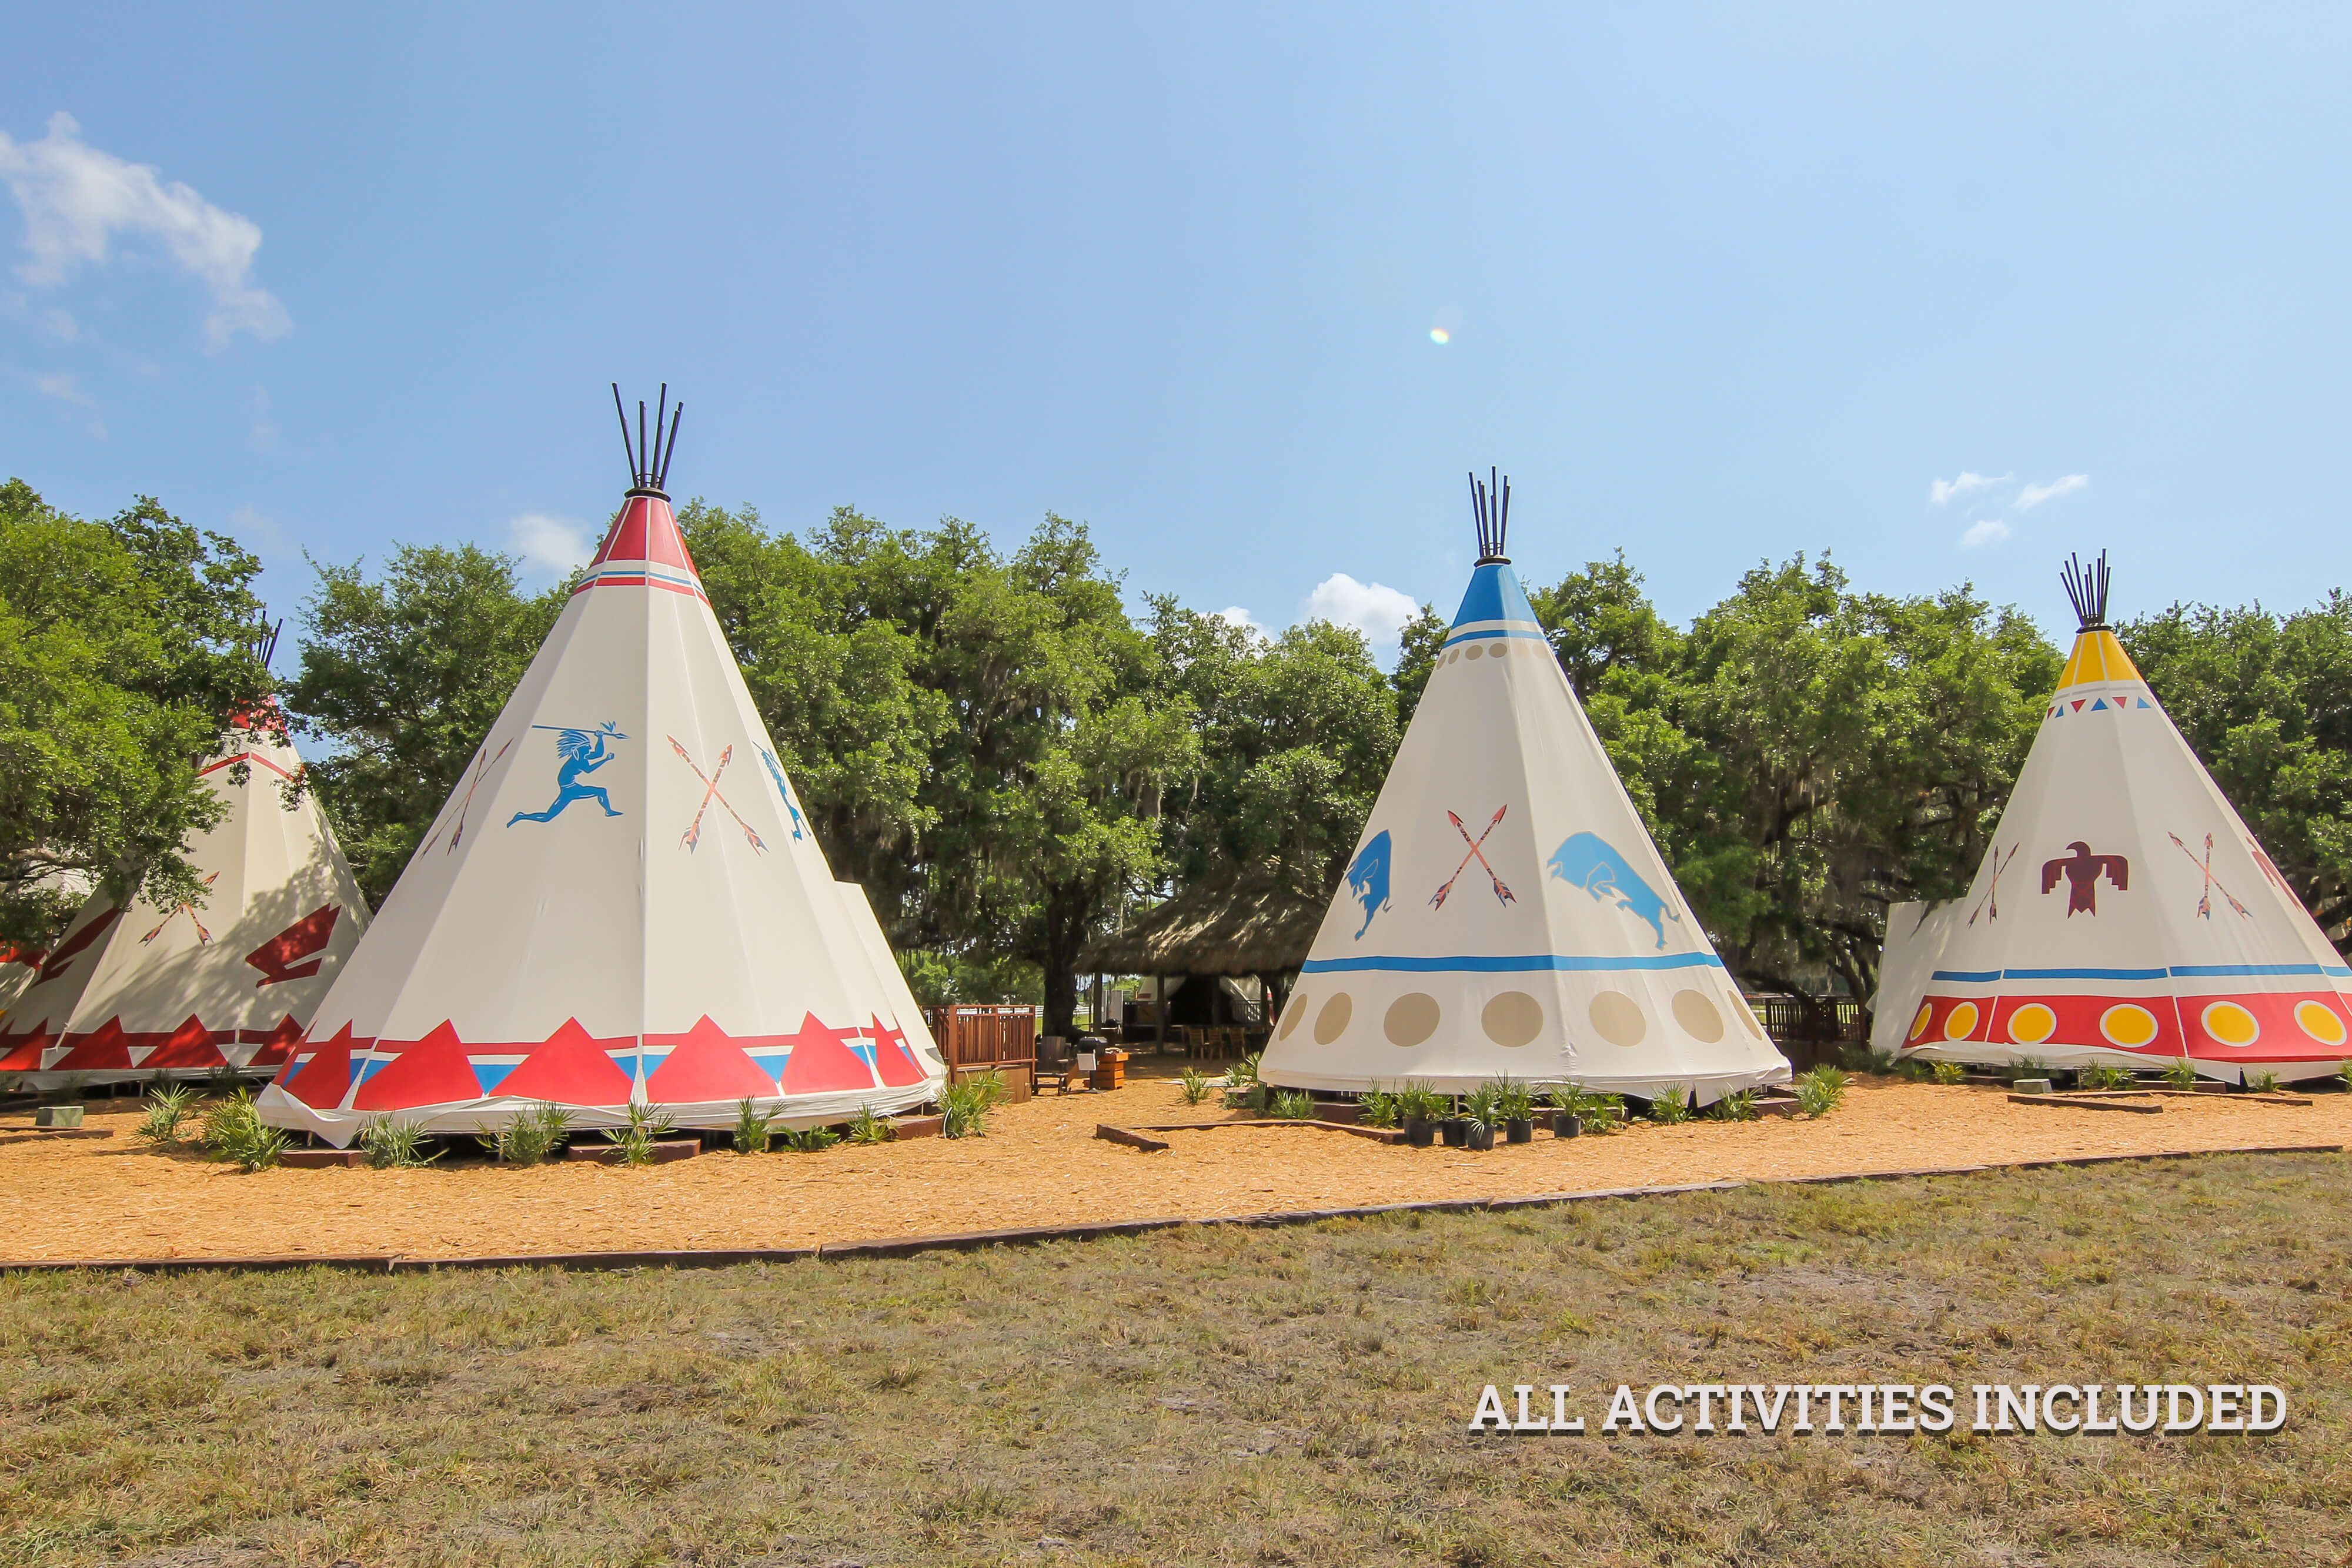 Luxe Teepee Room for Glamping |  Westgate River Ranch Resort & Rodeo | Westgate Resorts